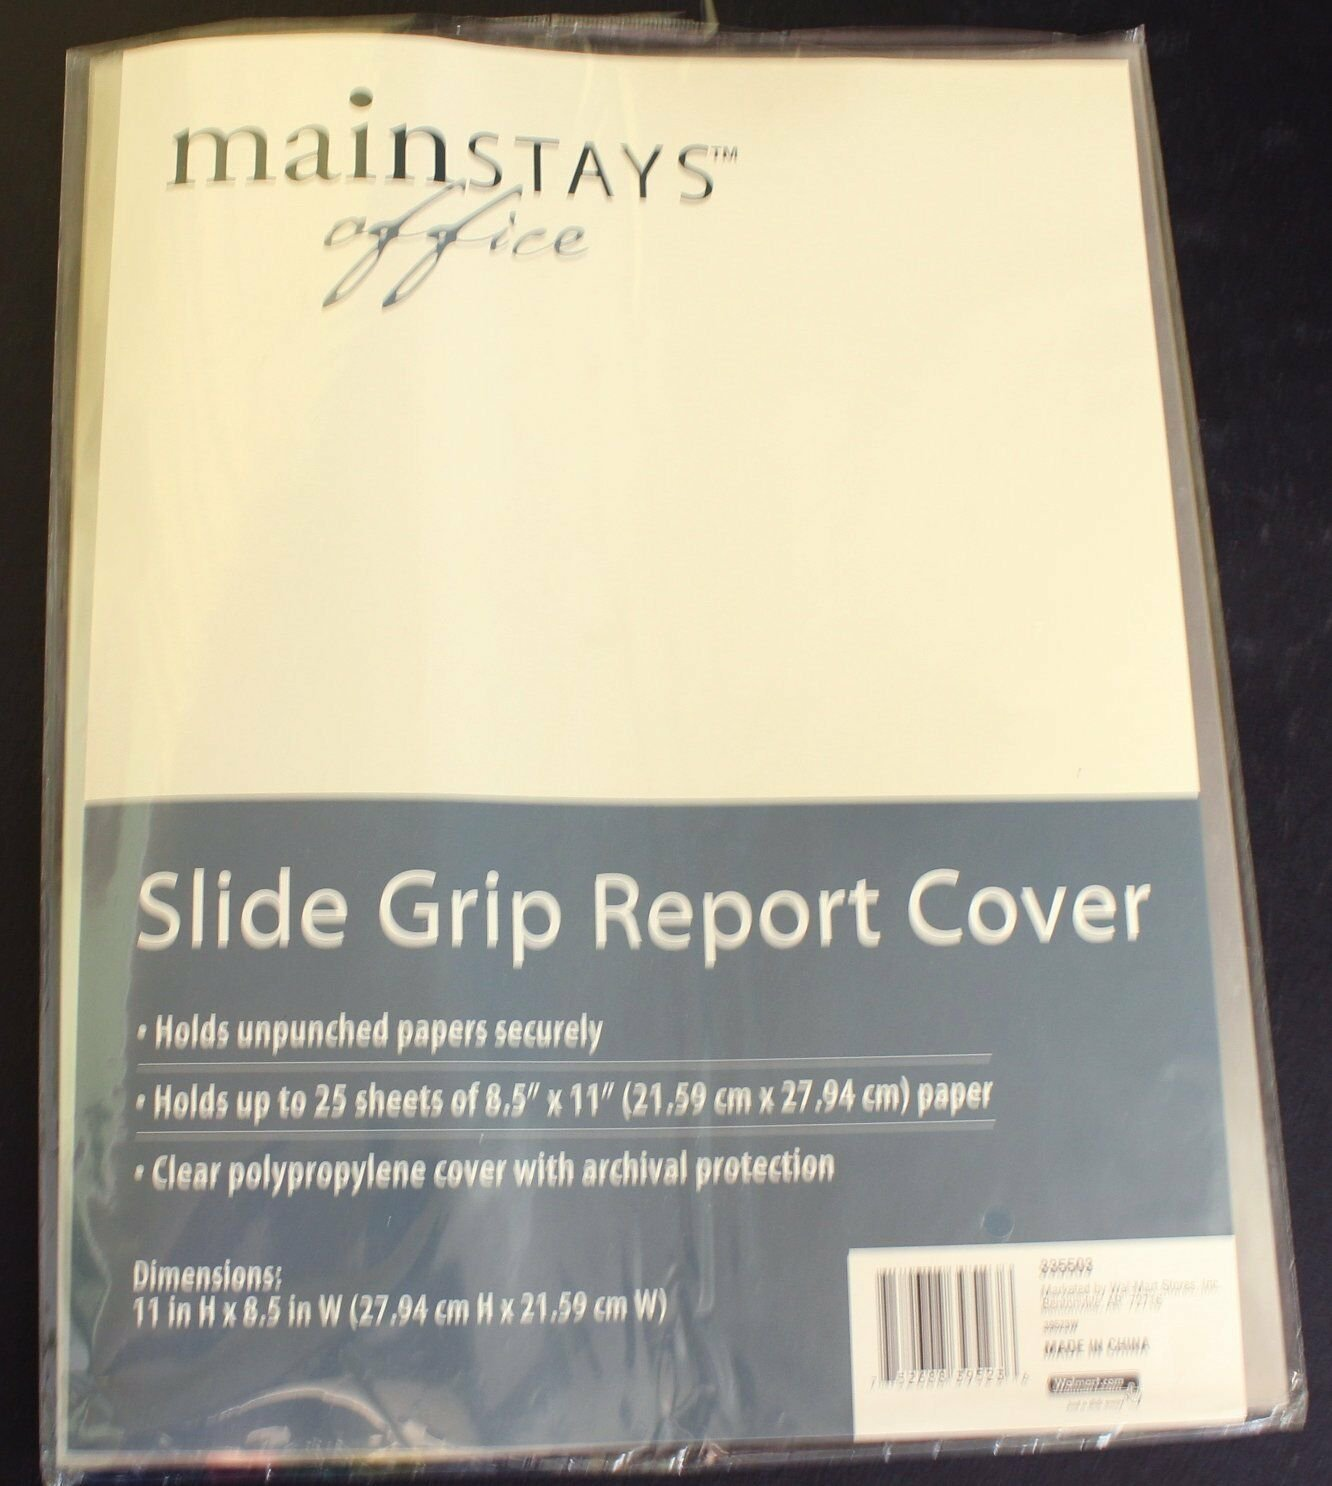 Slide Grip Punchless Report Cover 6 pack Clear Cover Mixed Color Slides 8.5 x 11